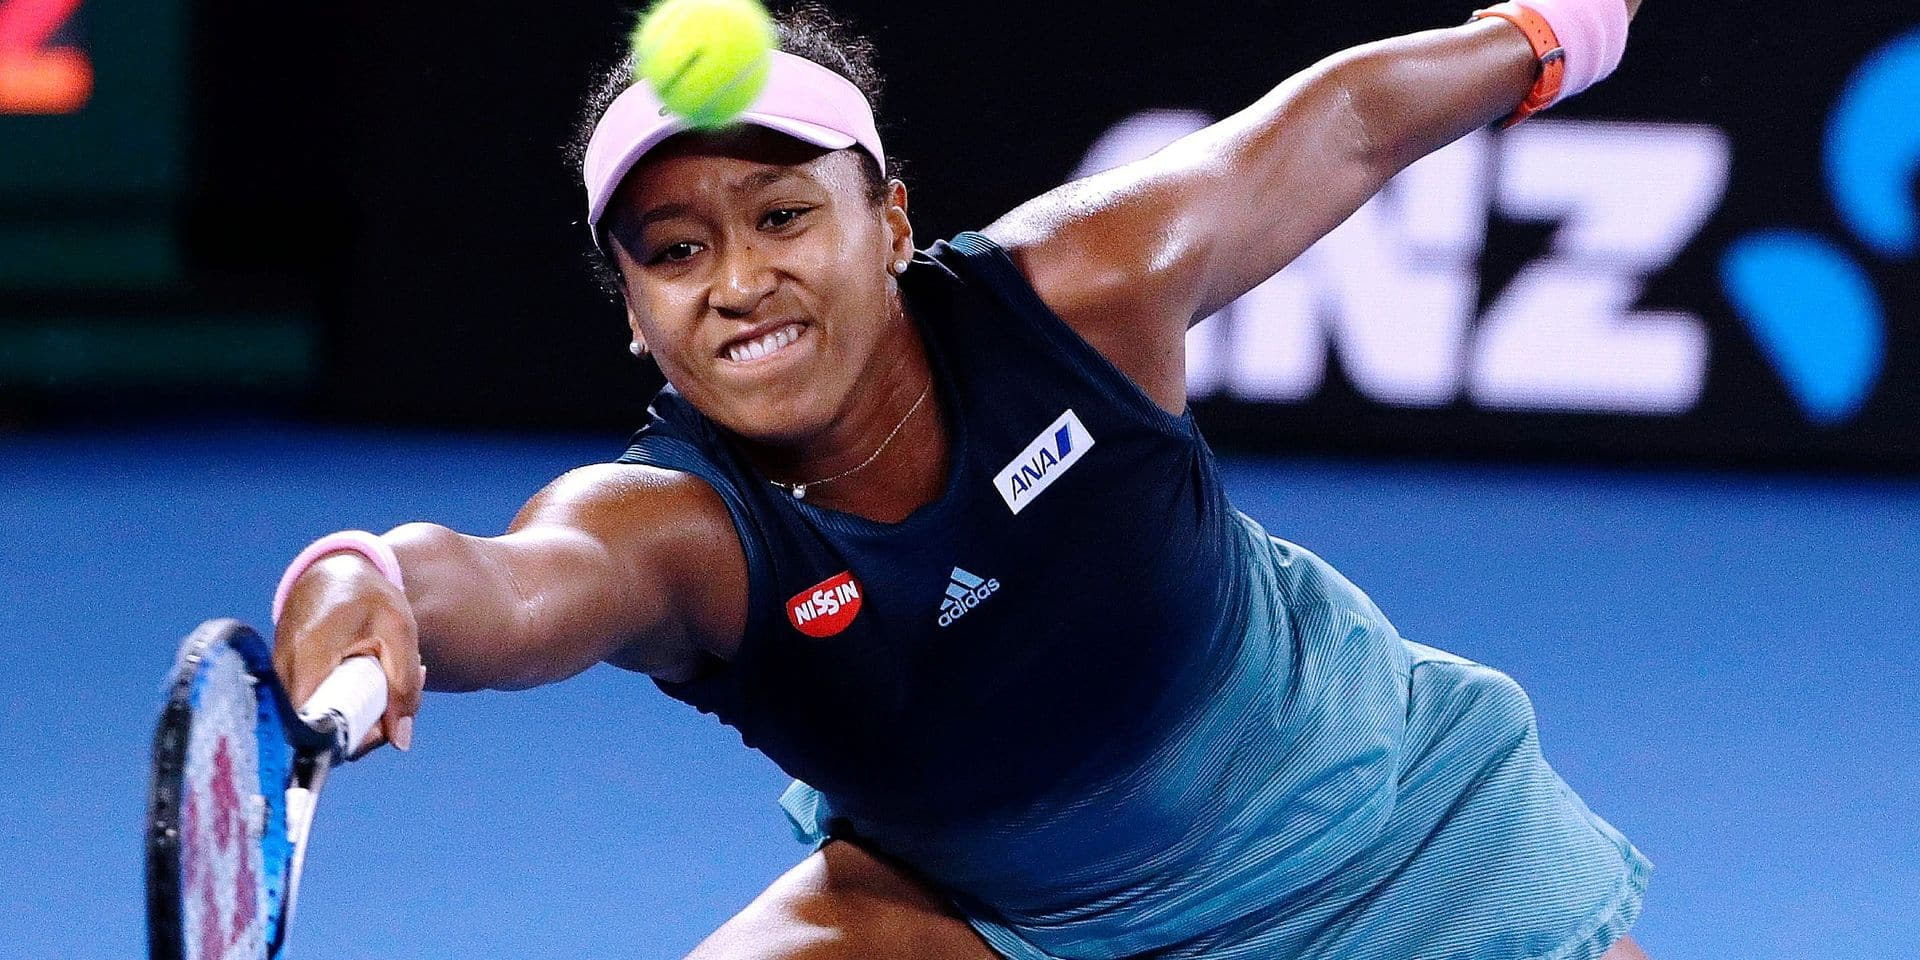 Japan's Naomi Osaka makes a forehand return to Petra Kvitova of the Czech Republic during the women's singles final at the Australian Open tennis championships in Melbourne, Australia, Saturday, Jan. 26, 2019. (AP Photo/Mark Schiefelbein)